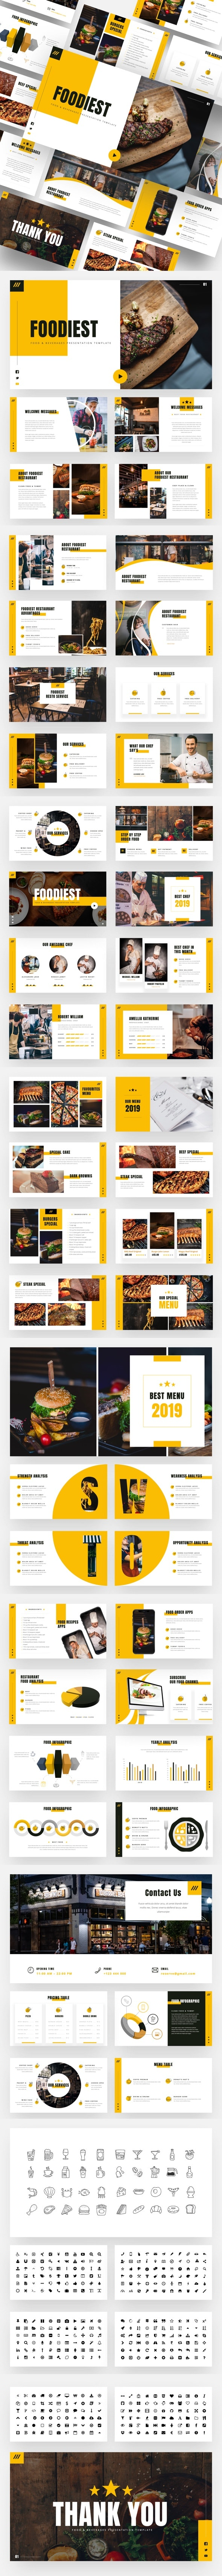 Foodiest - Food &  Beverages Powerpoint Template - Creative PowerPoint Templates